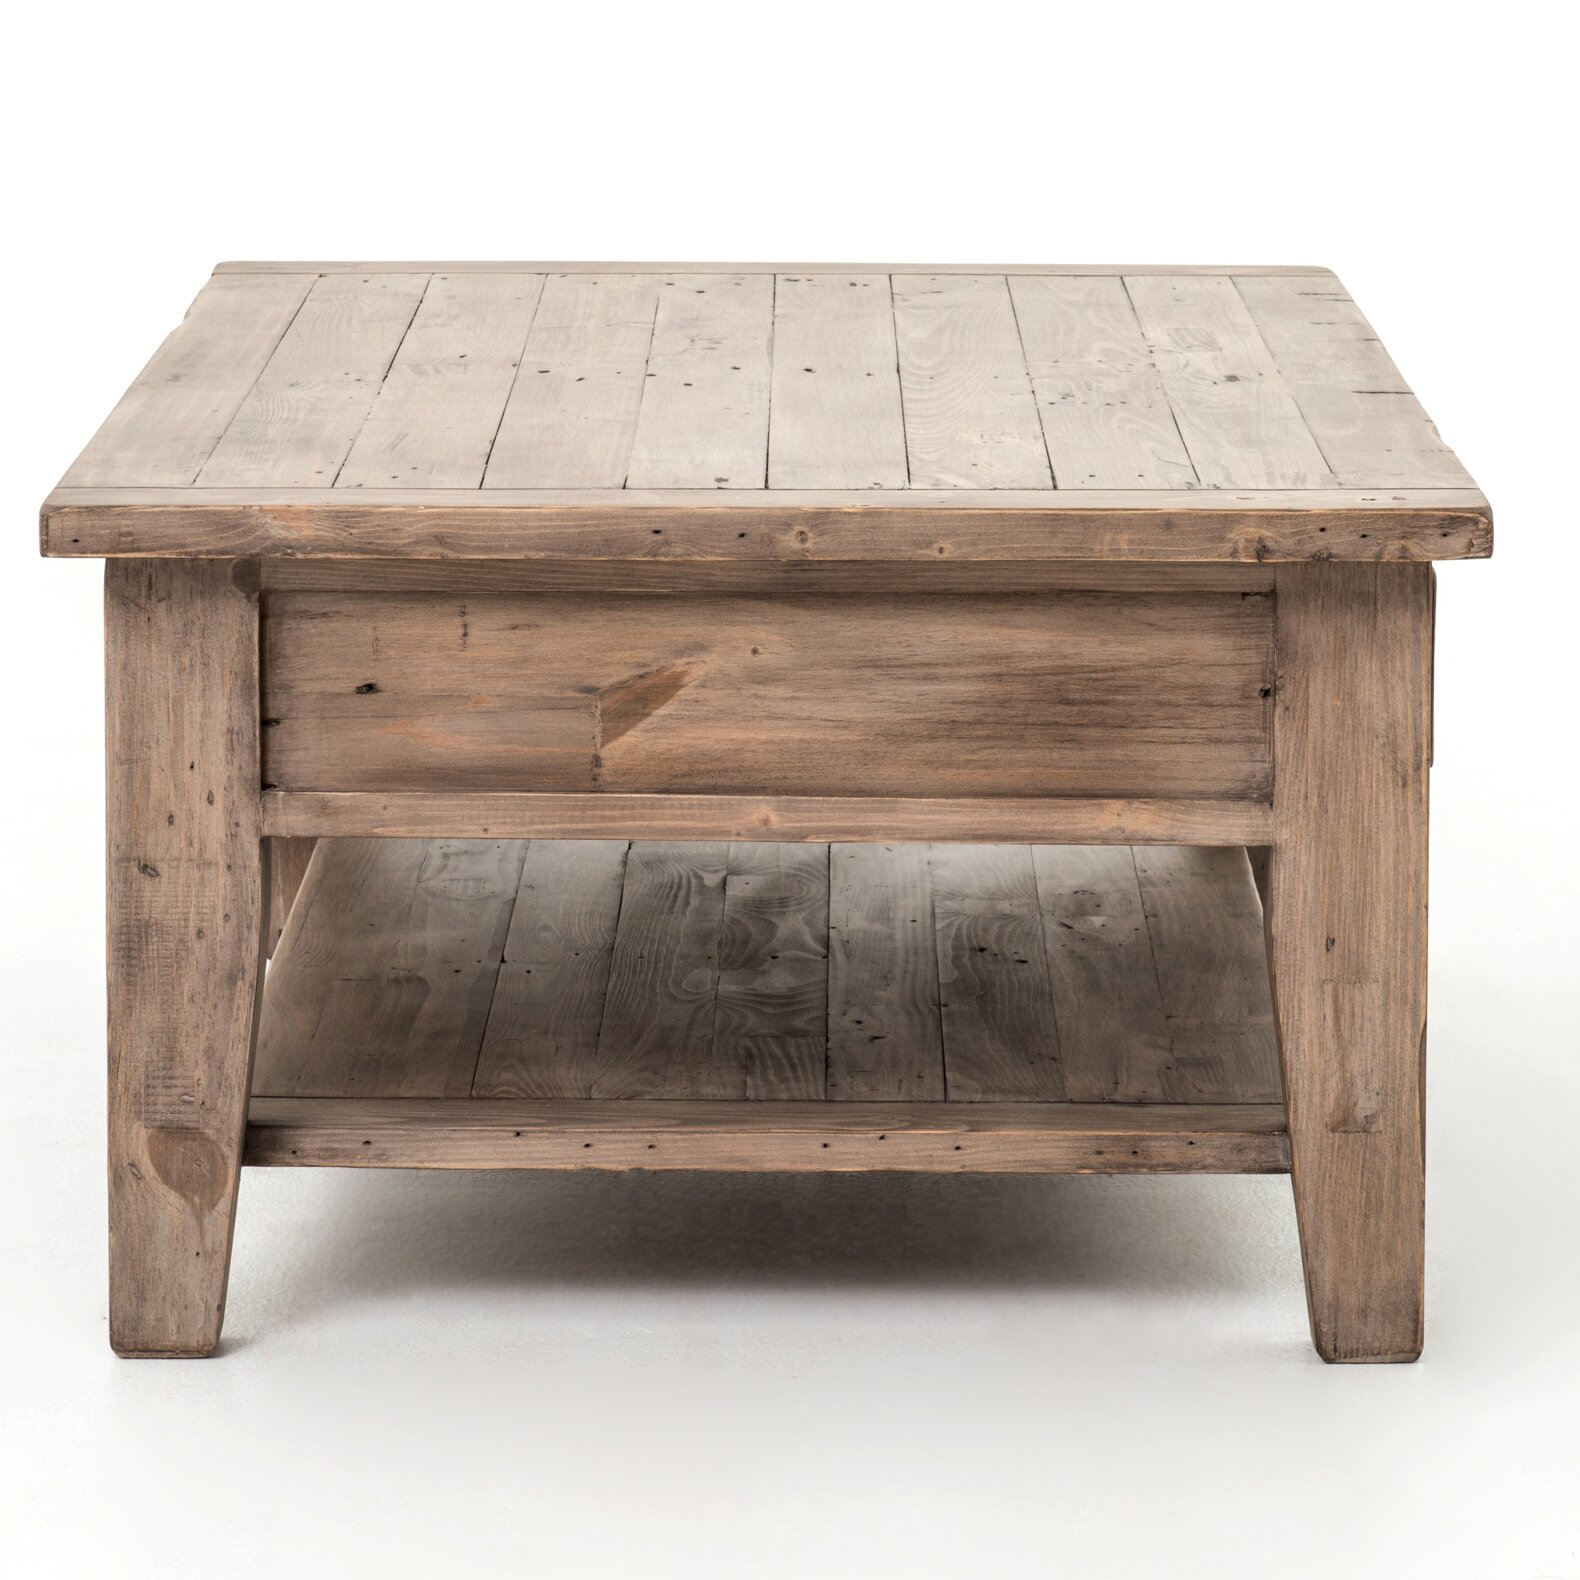 Modern Farmhouse Coffee Table: Laurel Foundry Modern Farmhouse Abbot Coffee Table